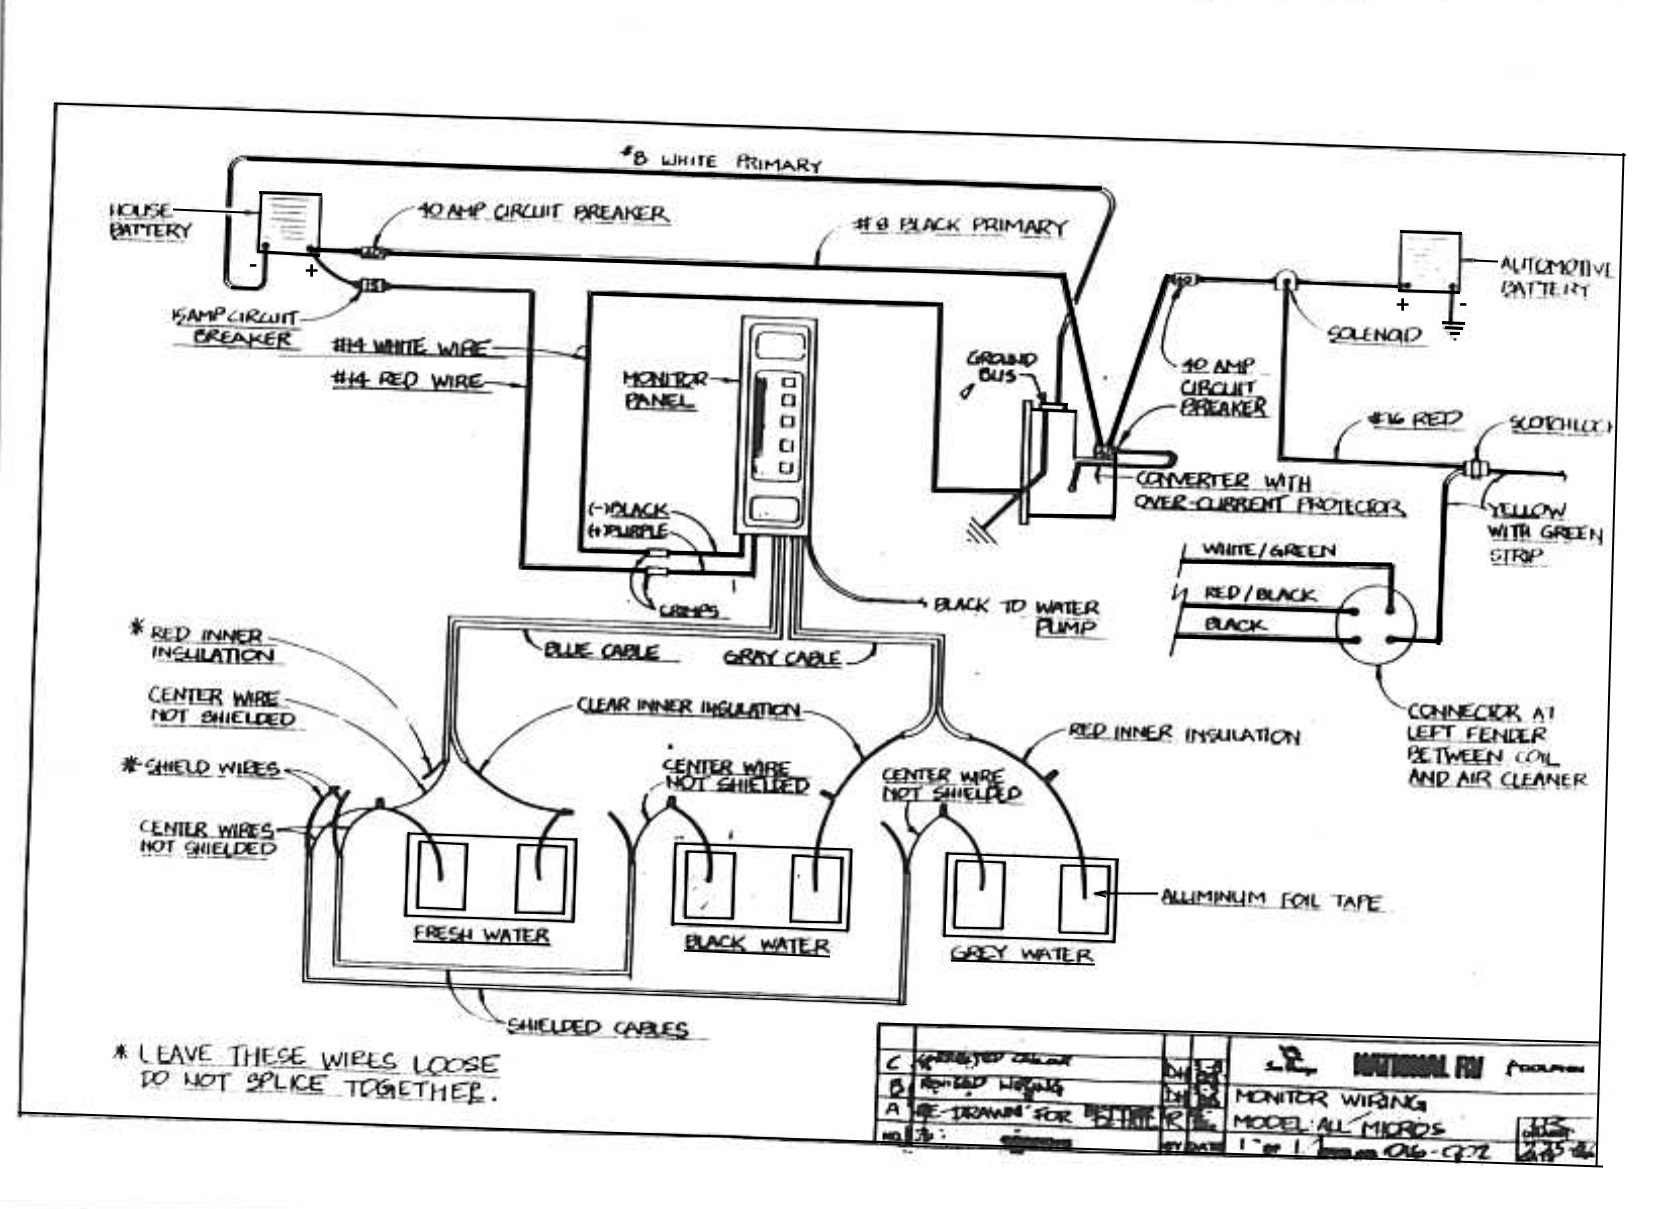 the dreaded sensor panel coach appliancetech issues Atwood RV Water Heater Wiring Diagram